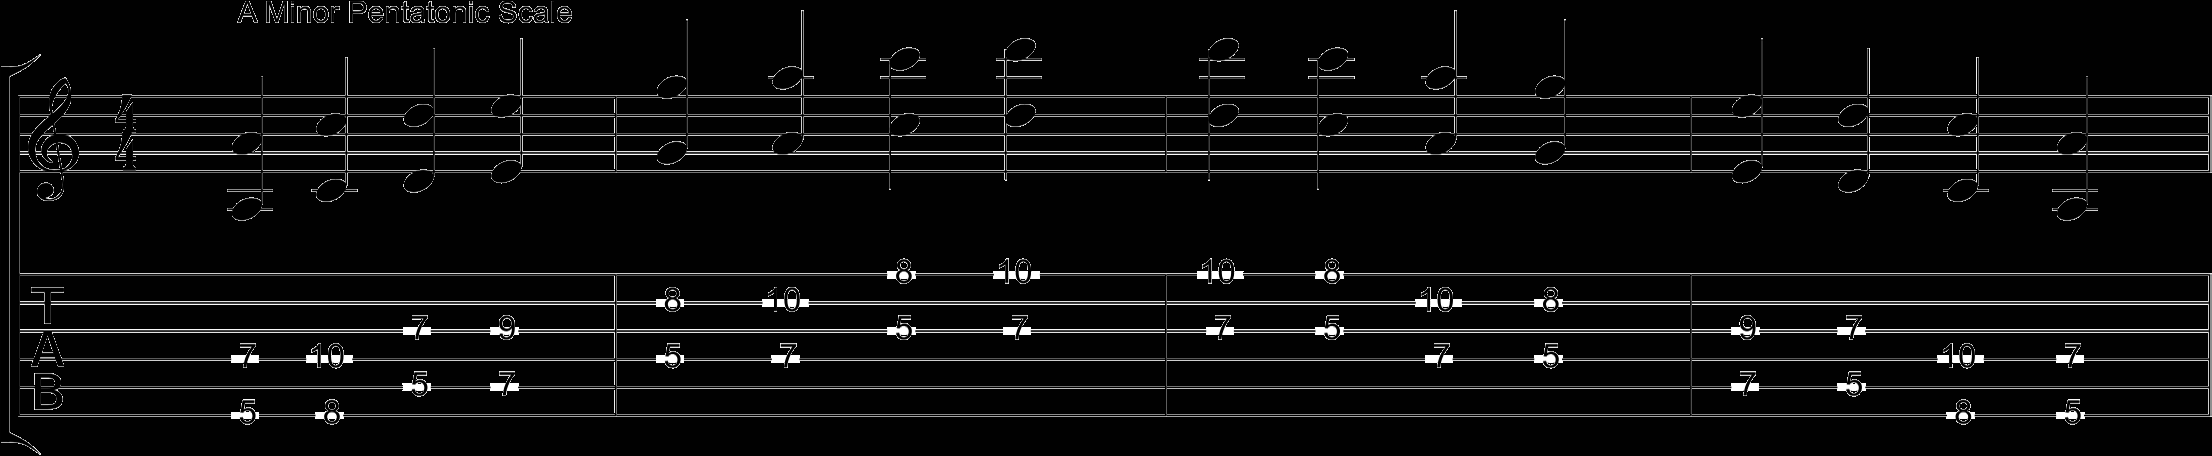 Minor pentatonic octave guitar shapes how to learn the guitar fretboard notes